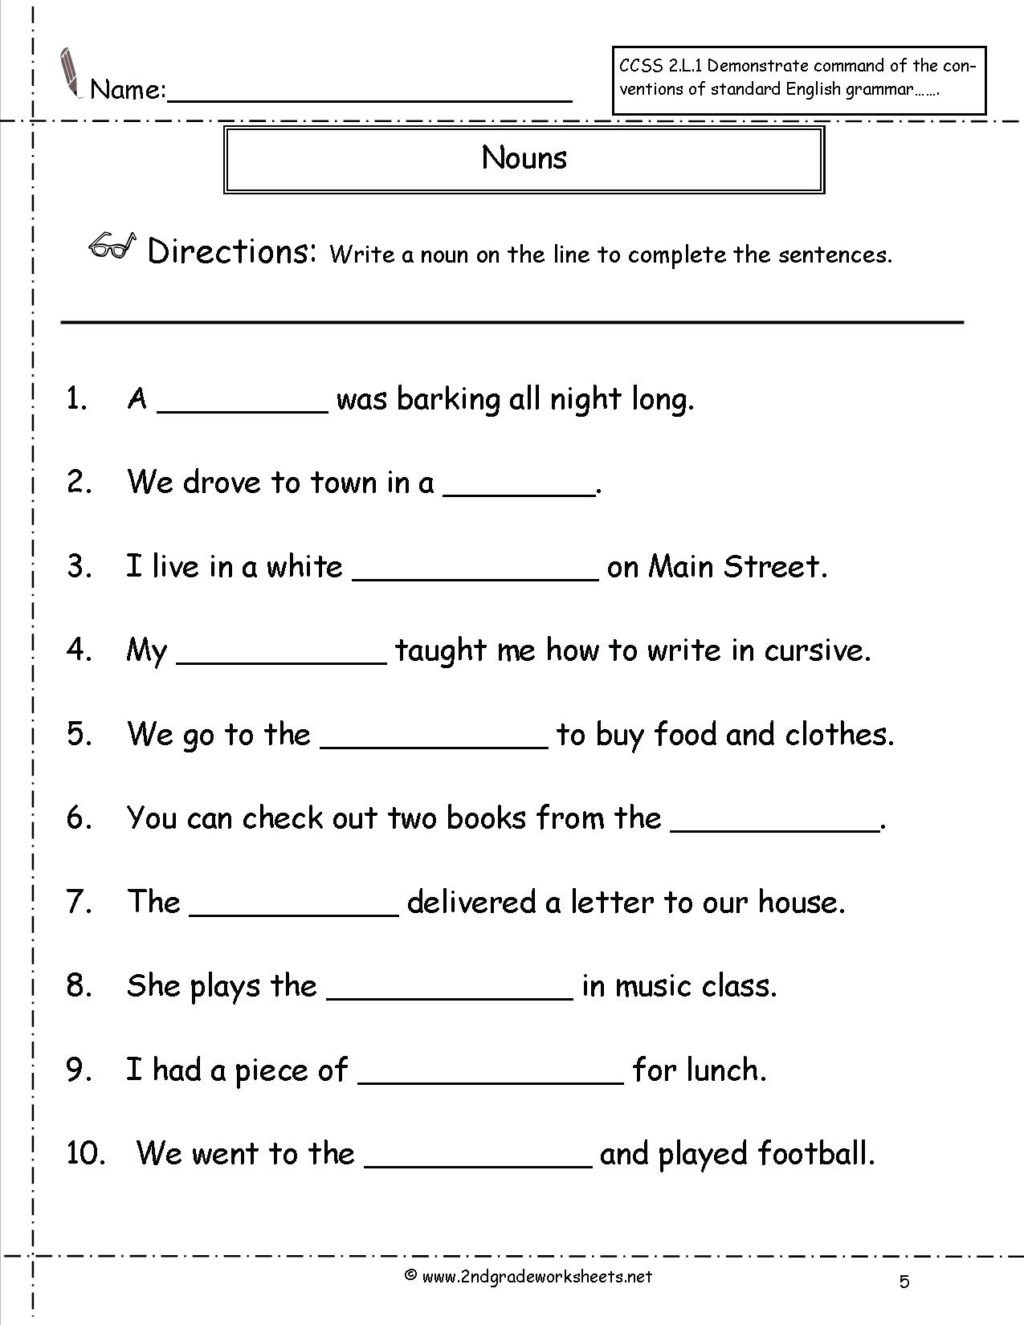 Possessive Pronouns Worksheet 2nd Grade Worksheet Free Printable Second Grade Reading